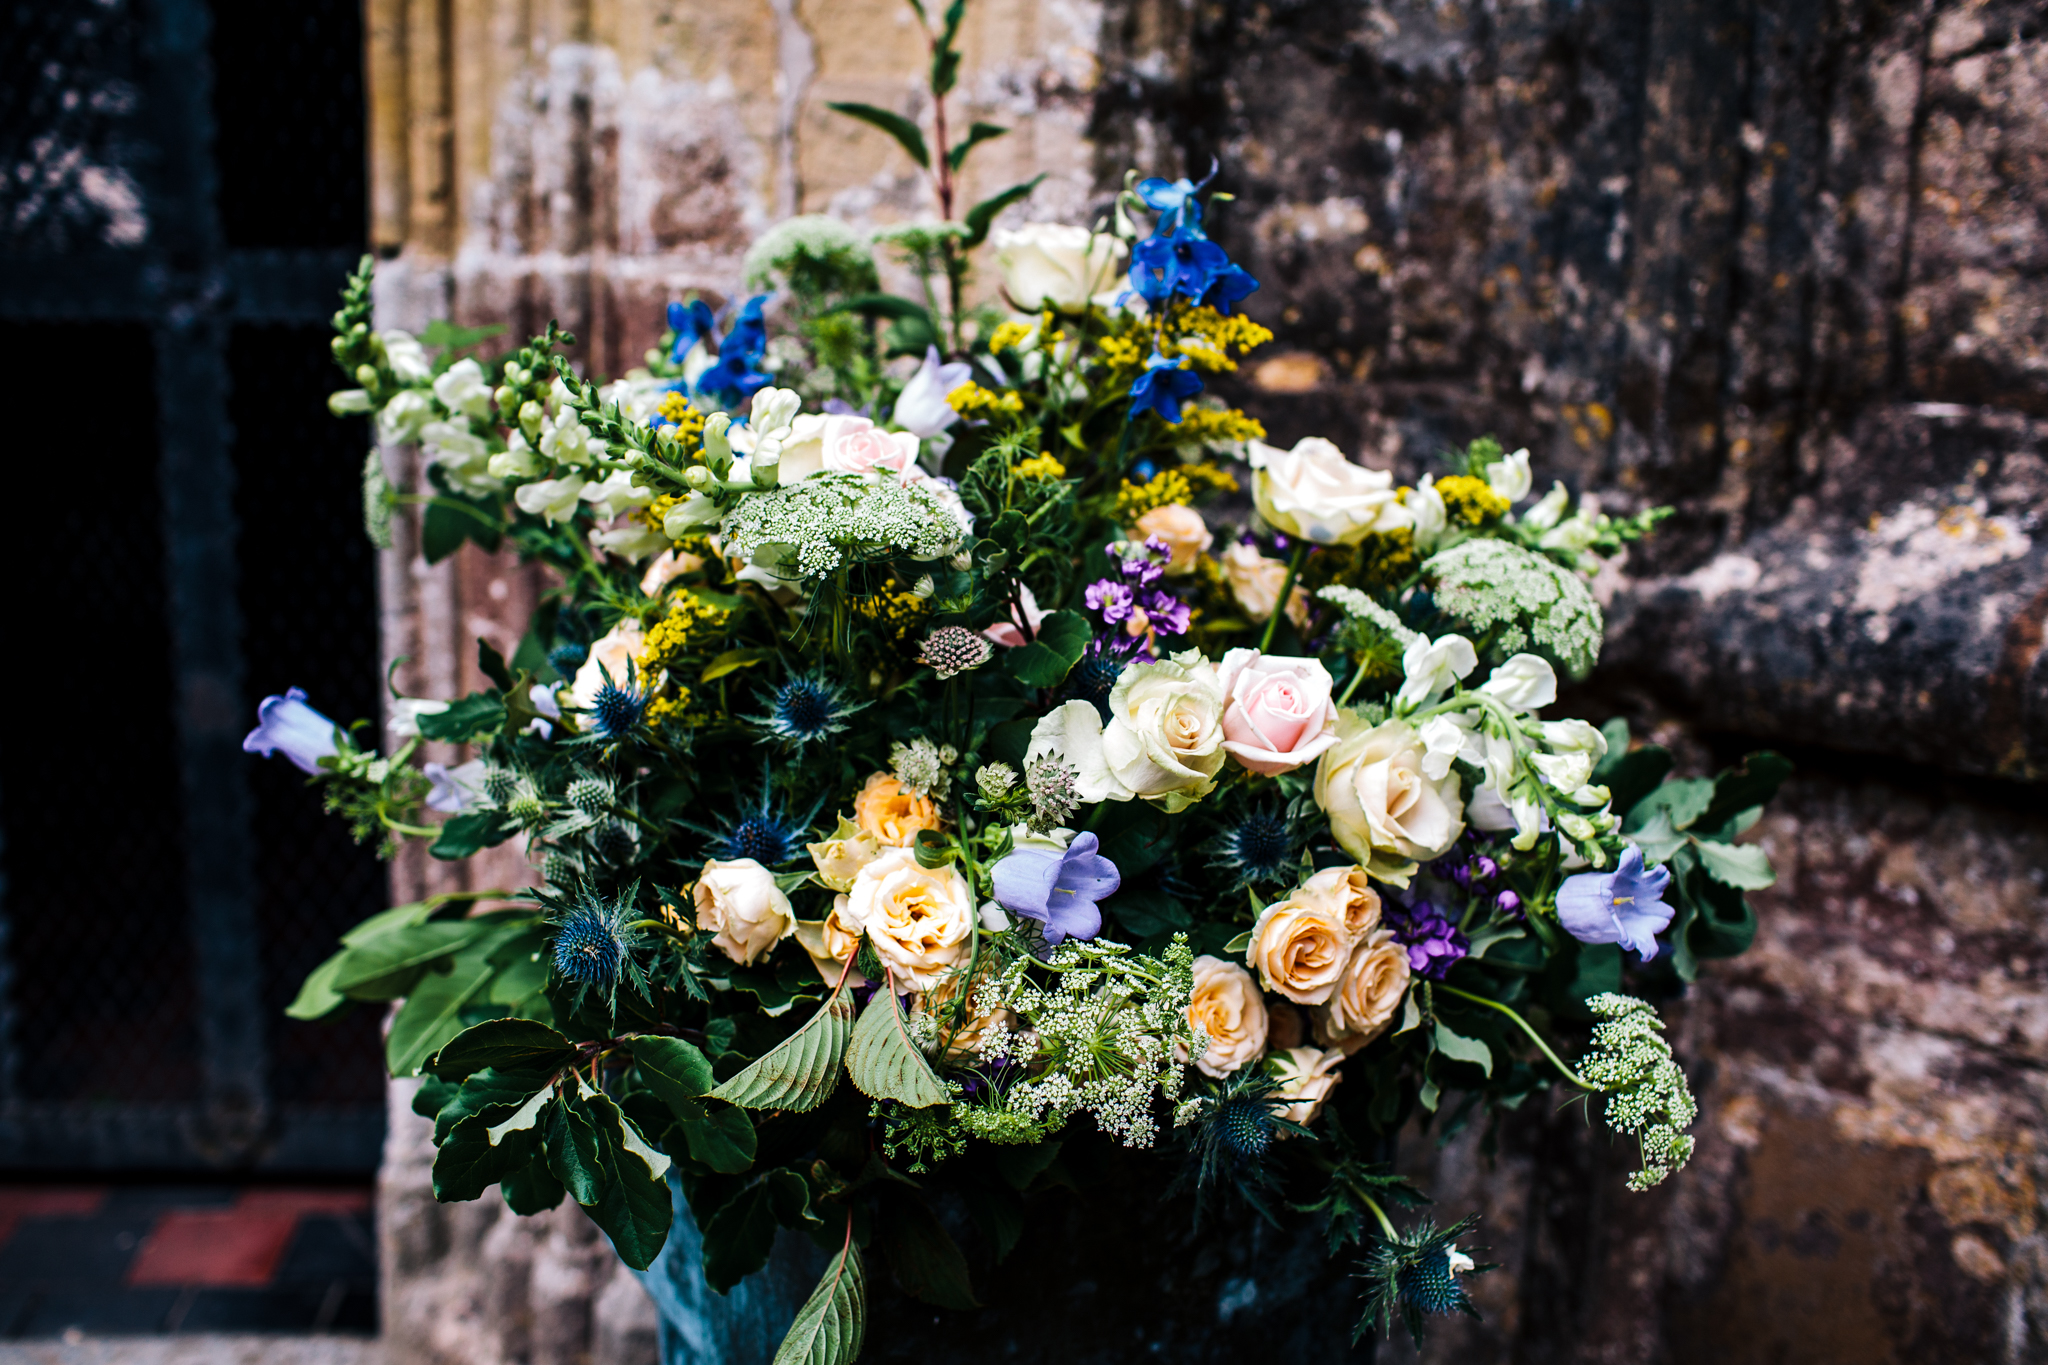 huge floral display outside St.Andrews church in mells, near frome